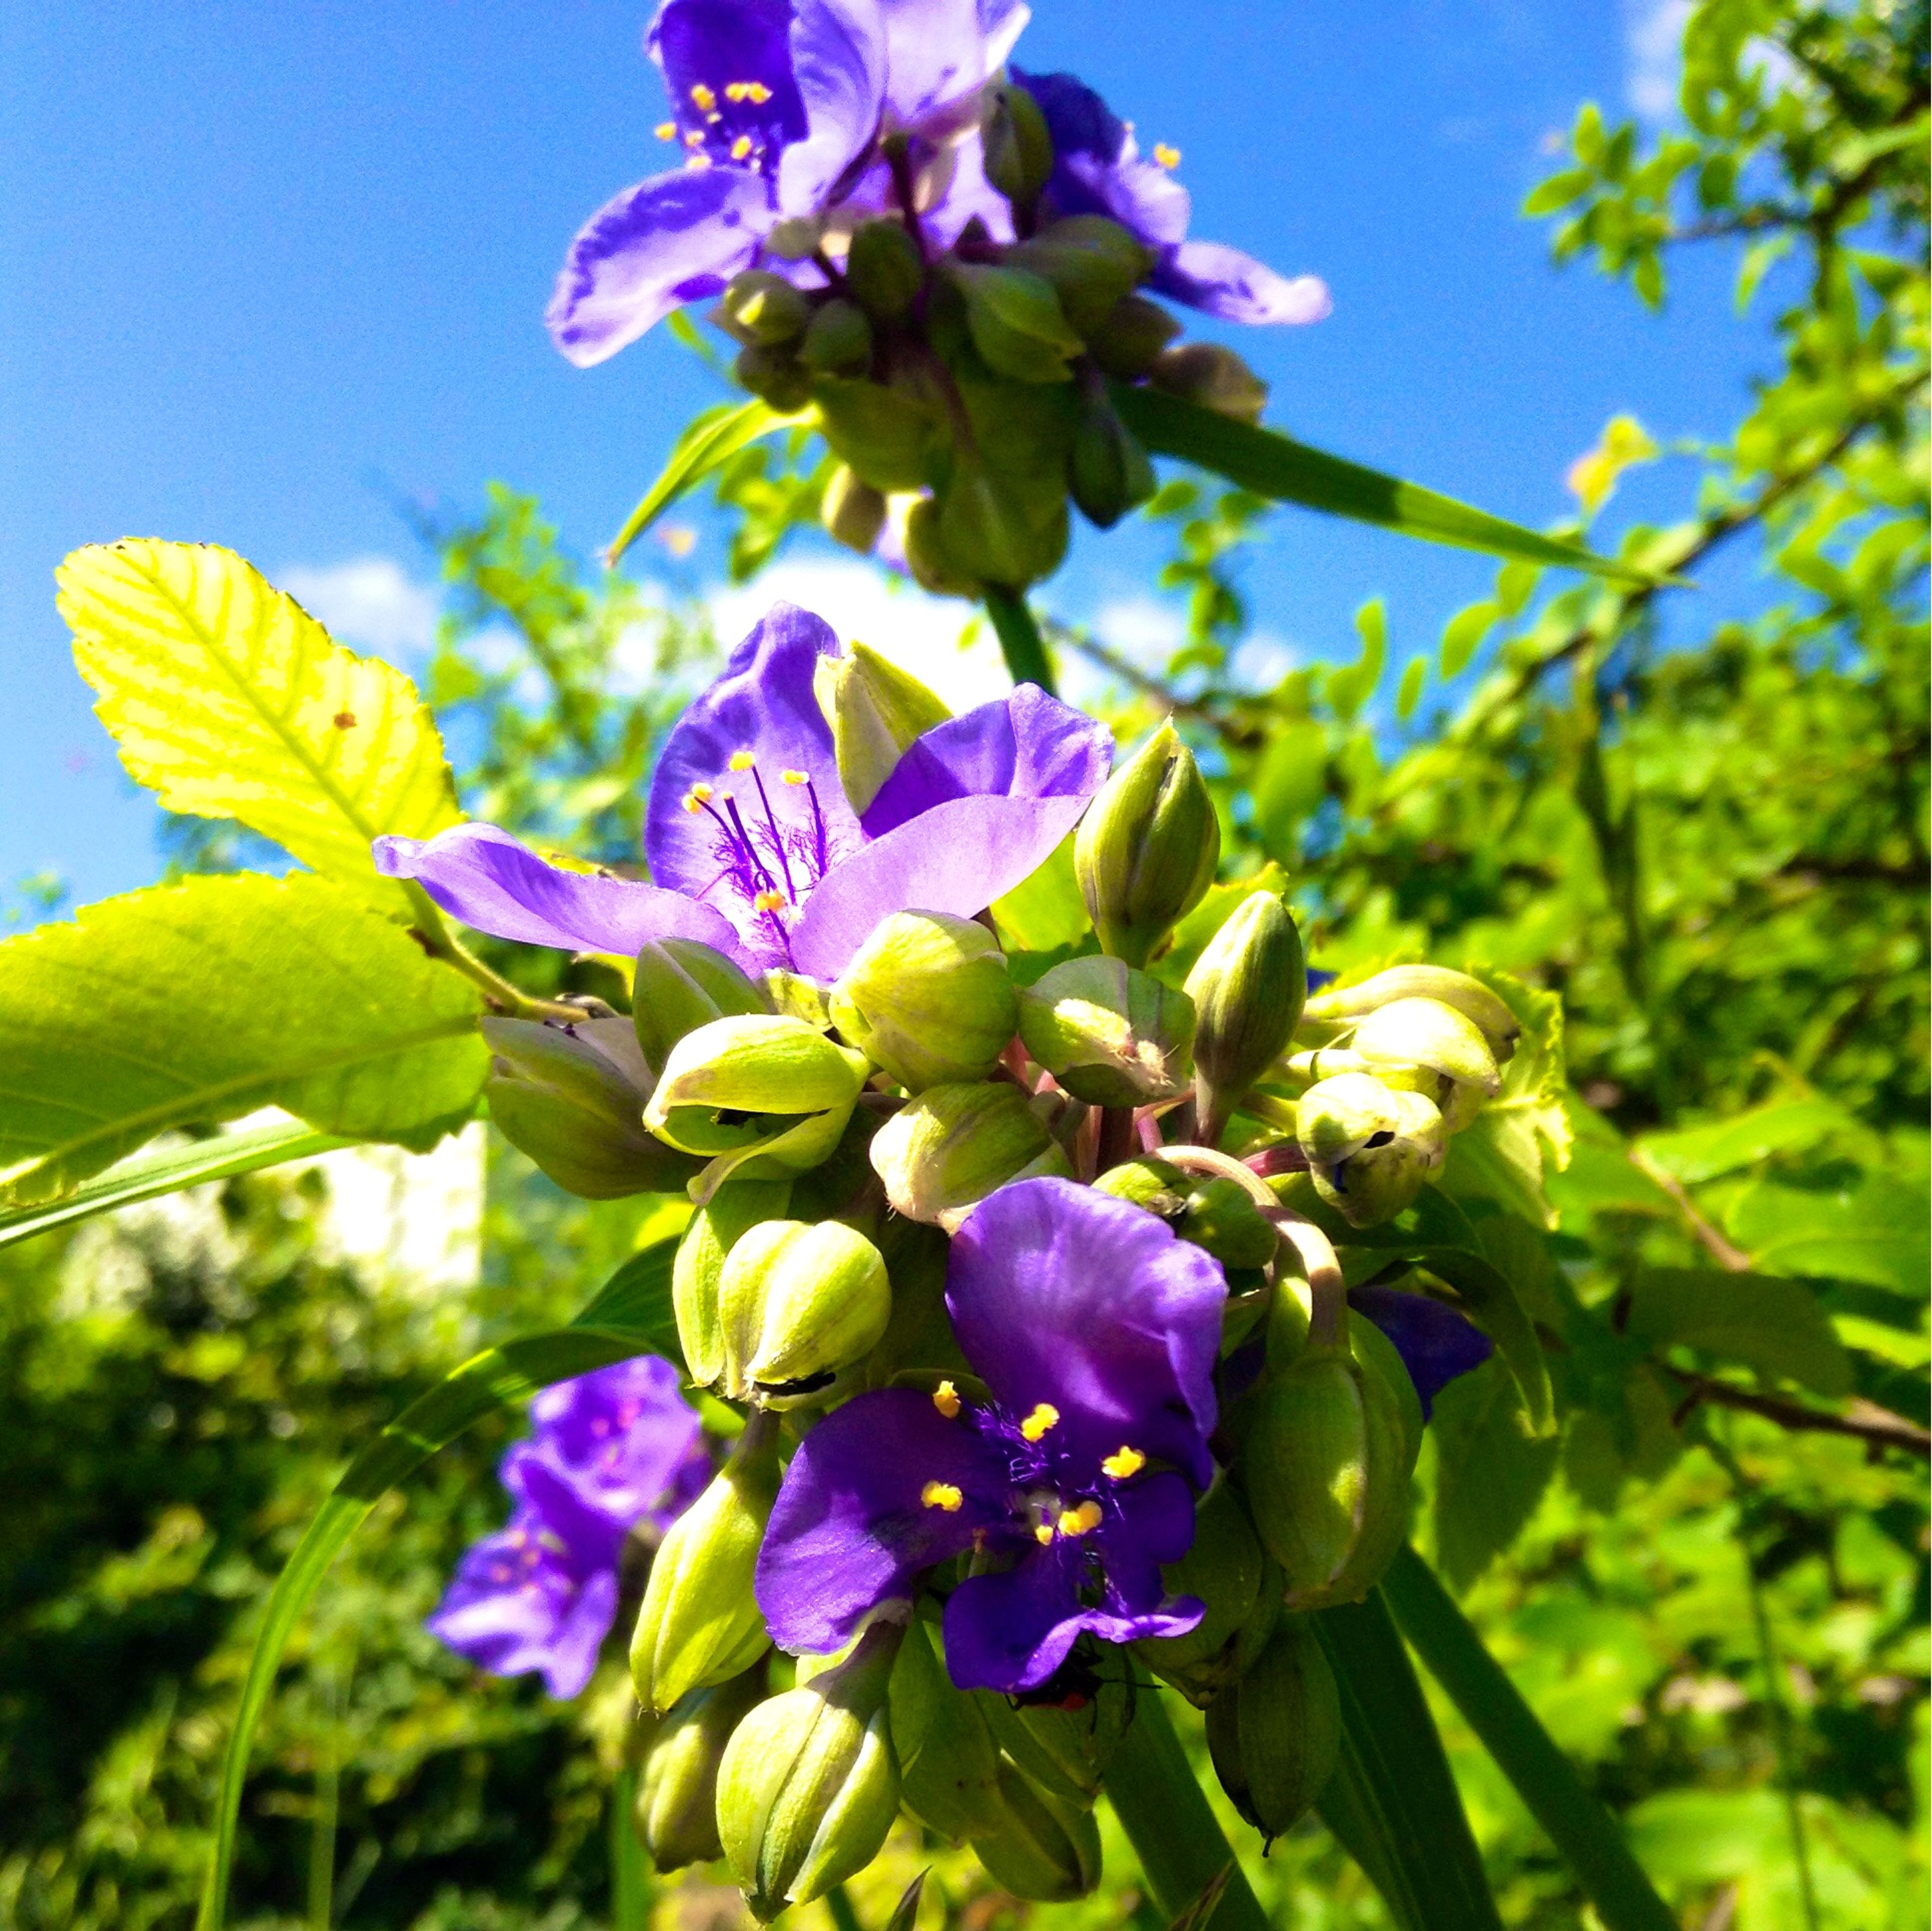 flower, freshness, growth, purple, fragility, petal, beauty in nature, blue, flower head, blooming, close-up, nature, focus on foreground, plant, in bloom, blossom, leaf, sunlight, stem, springtime